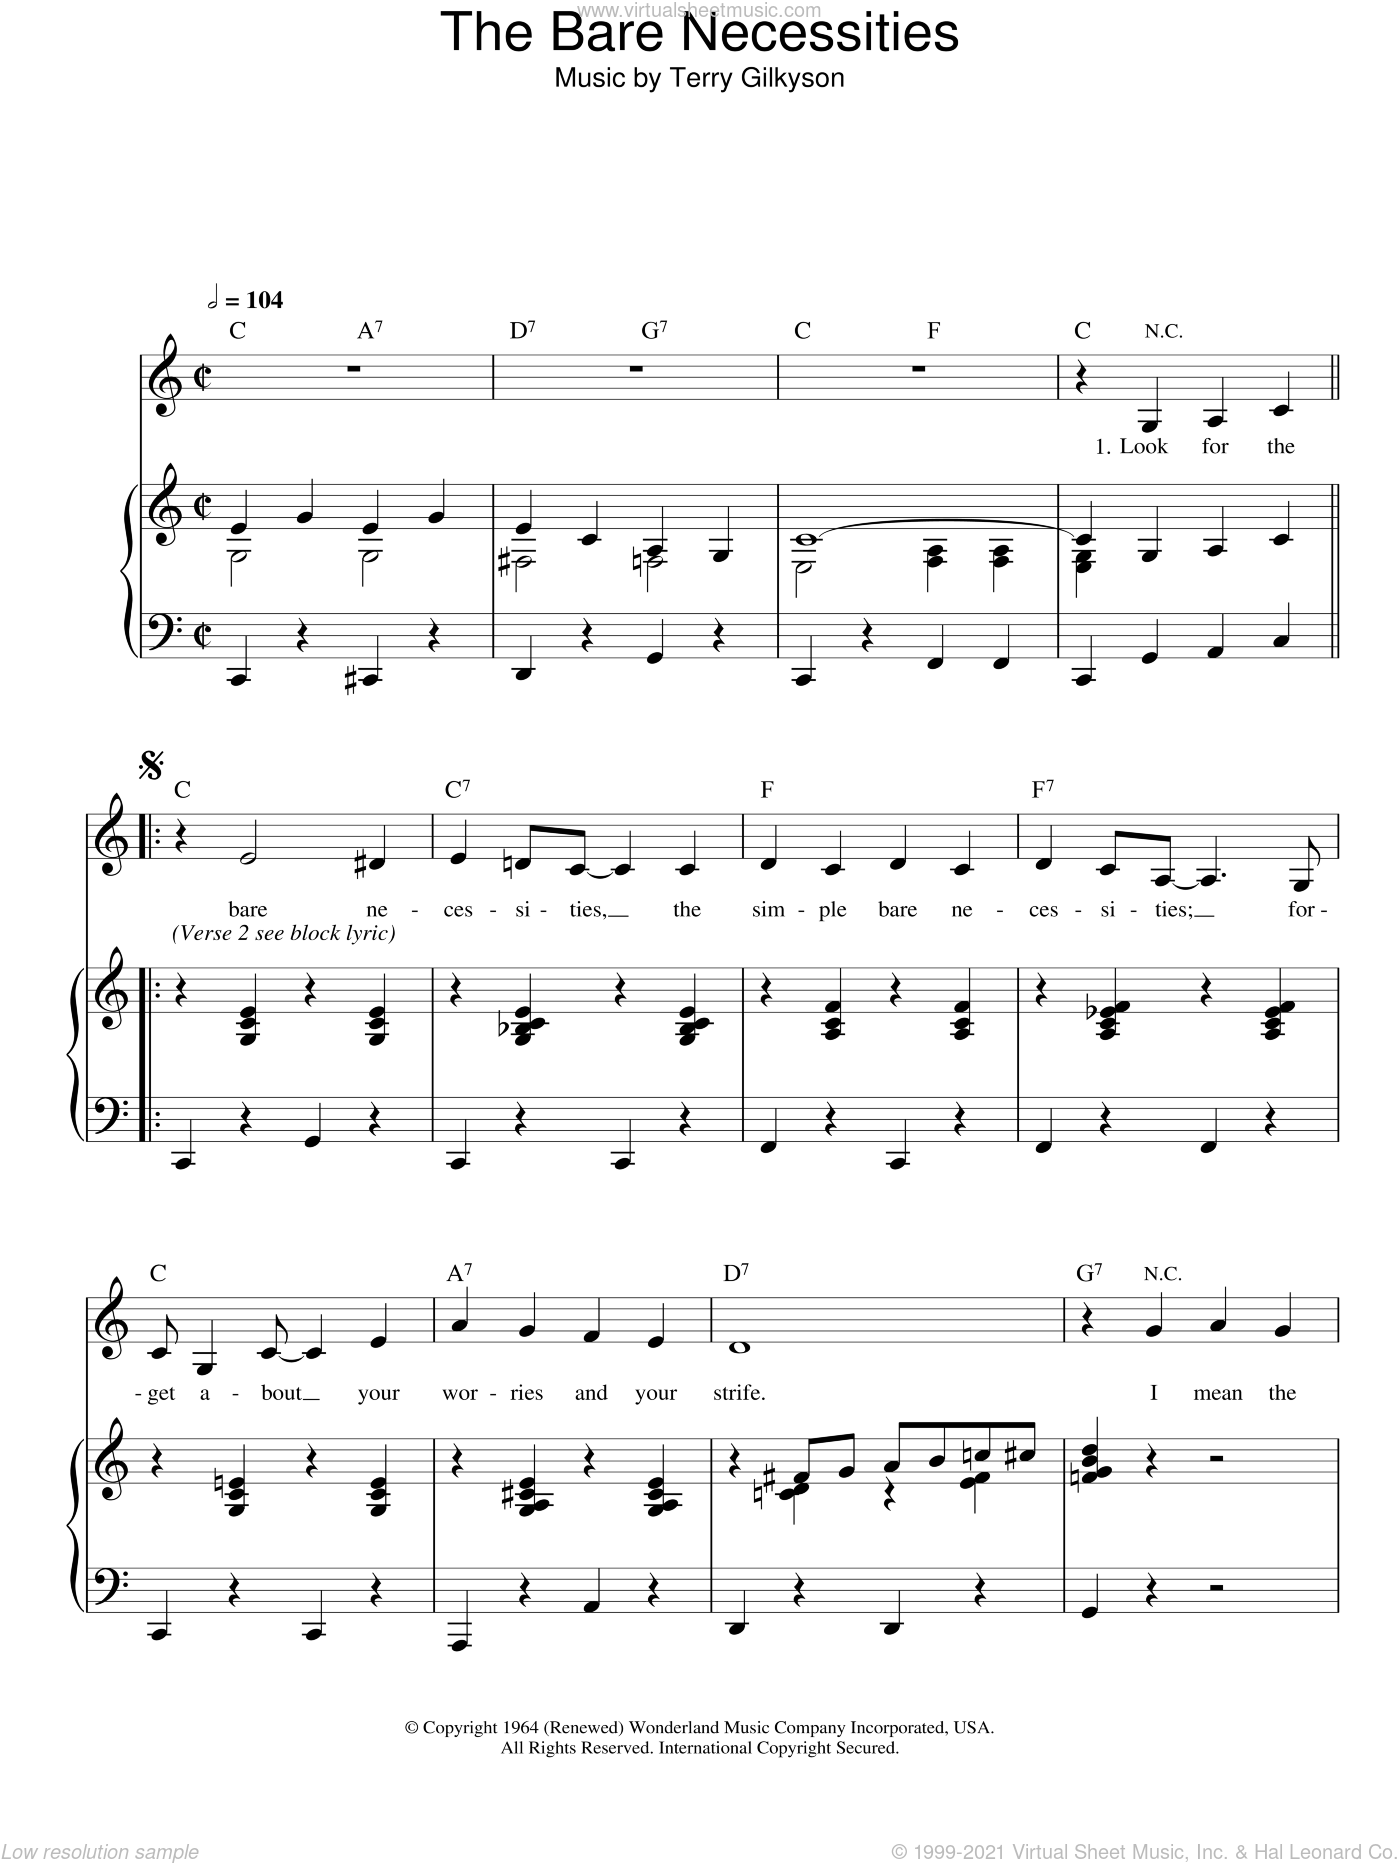 The Bare Necessities sheet music for voice and piano by Terry Gilkyson, intermediate skill level